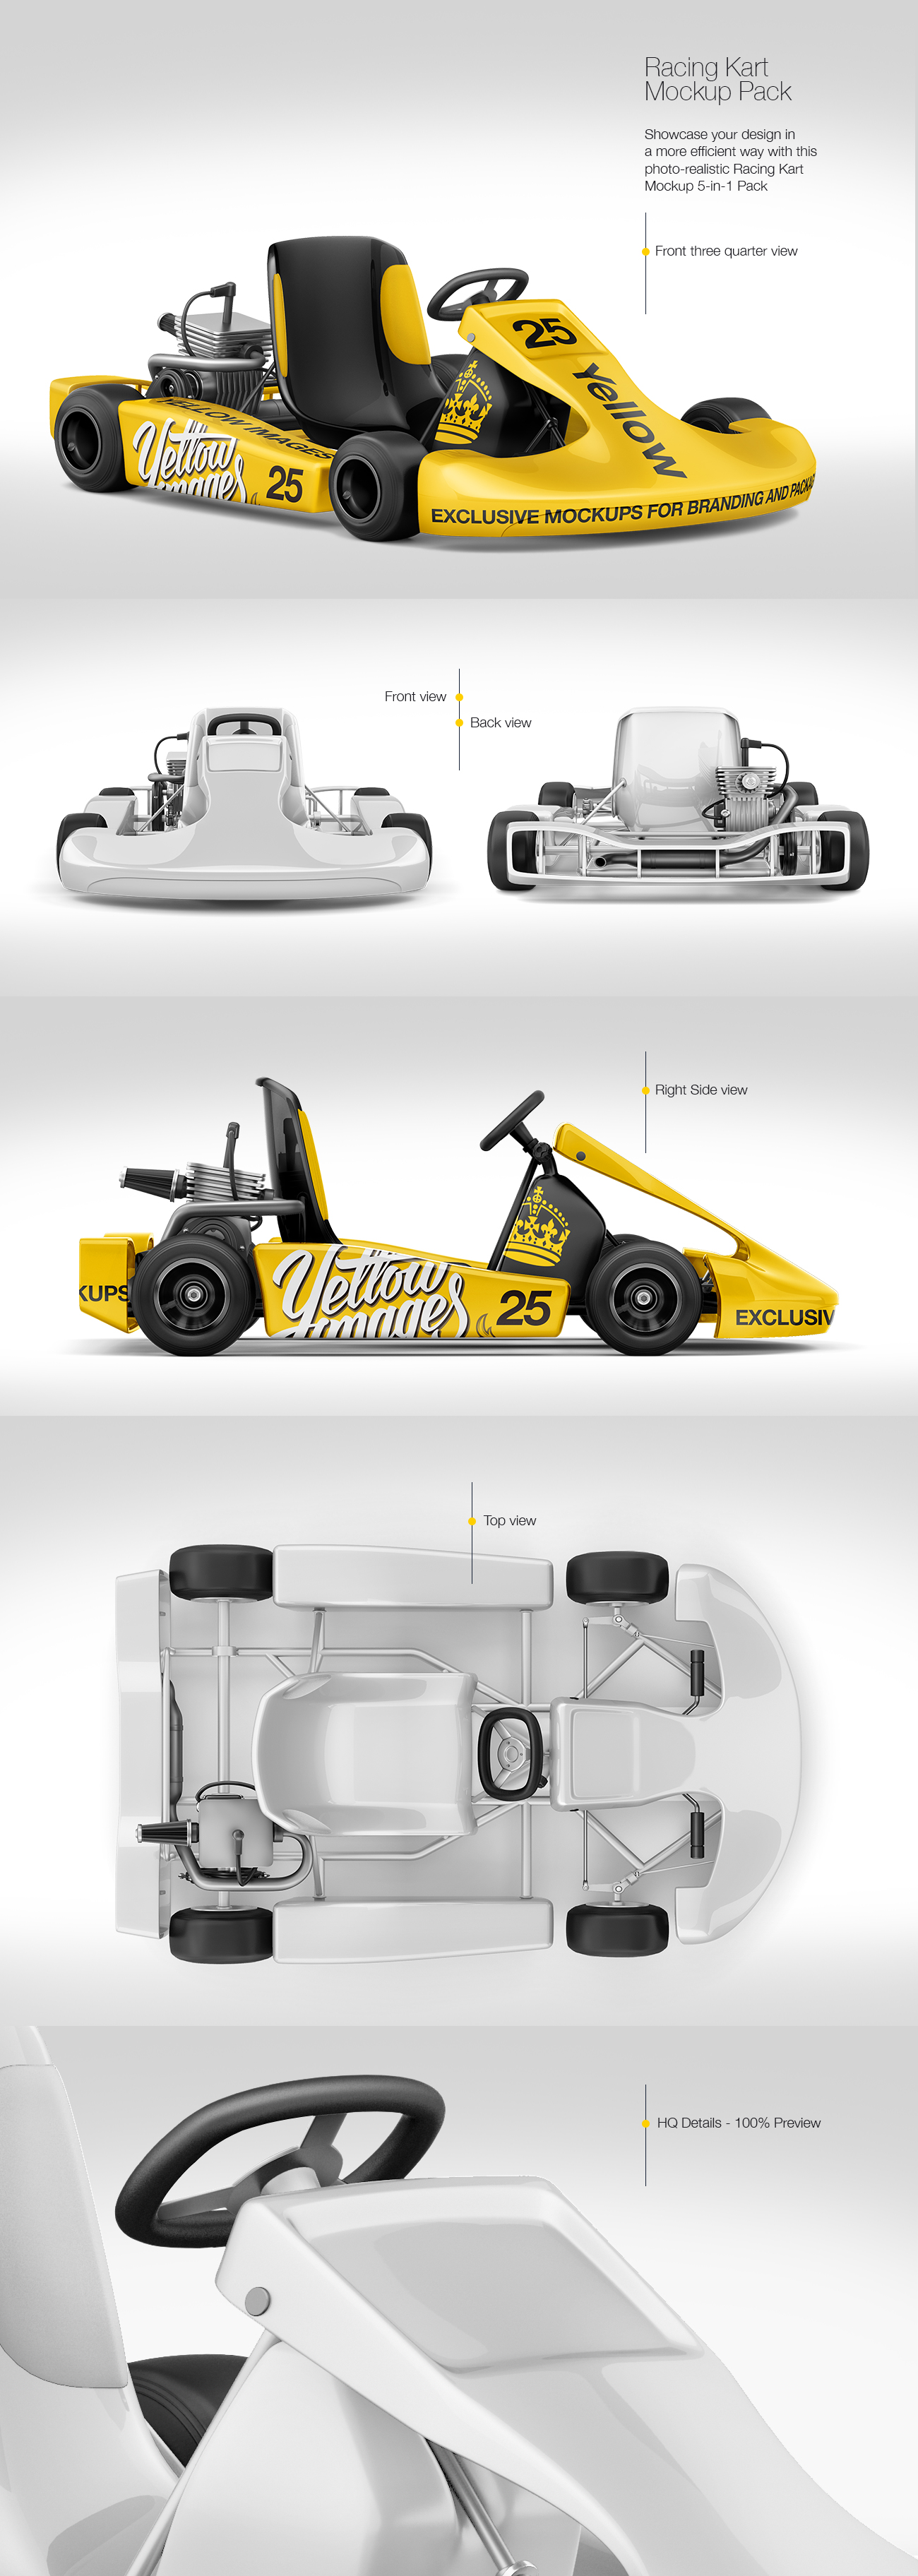 Download Racing Kart Mockup Pack In Handpicked Sets Of Vehicles On Yellow Images Creative Store PSD Mockup Templates